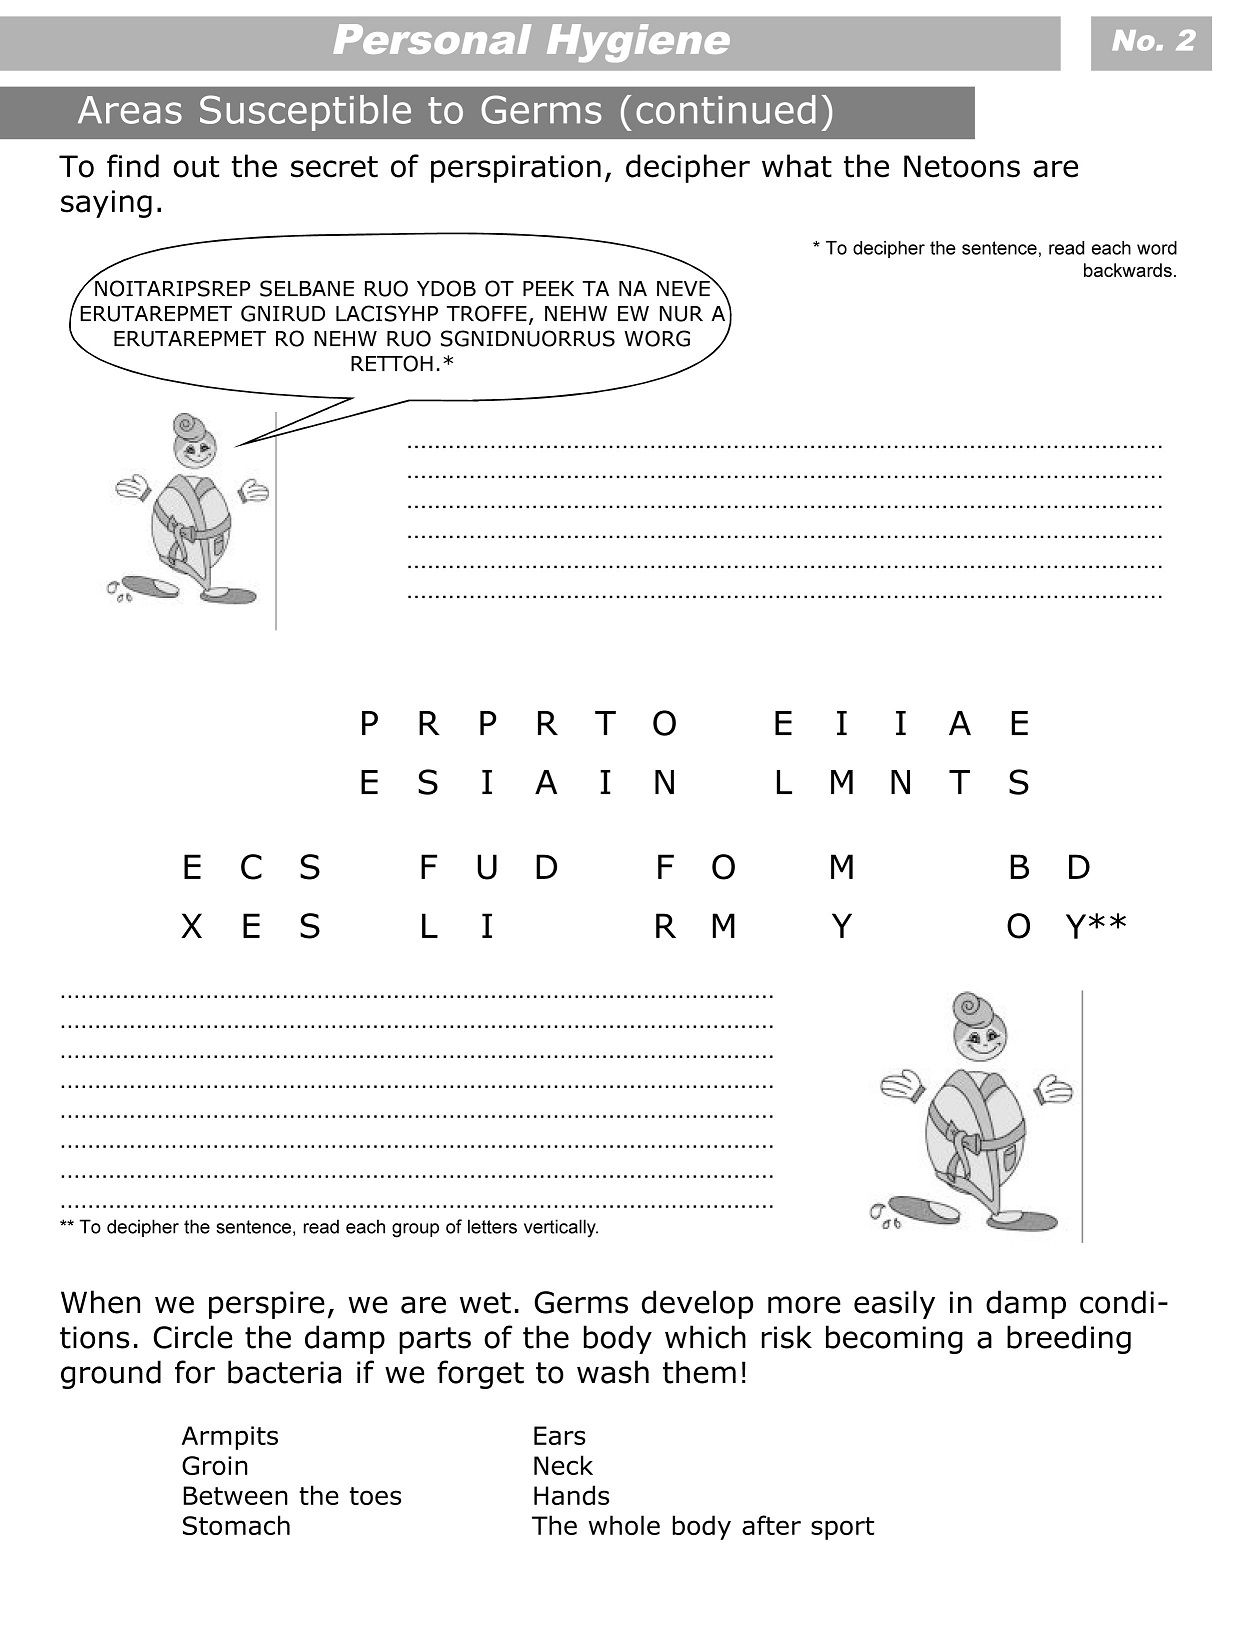 Personal Hygiene Worksheets For Kids Level 3   Personal hygiene worksheets [ 1650 x 1240 Pixel ]